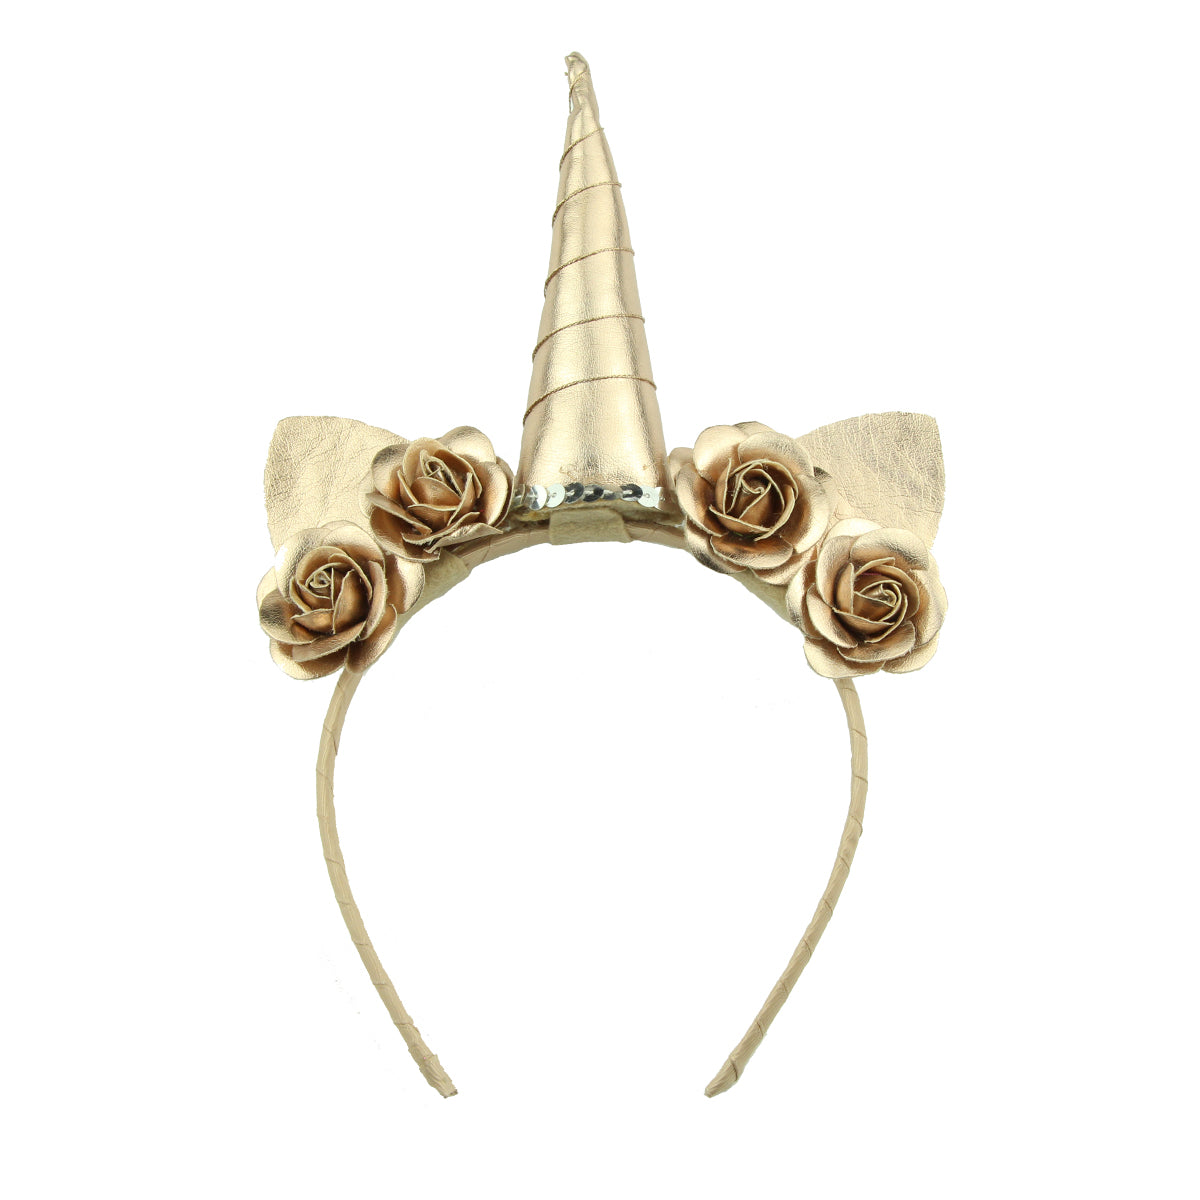 fashion quality suede shiny gold dog ears unicorn horn ribbon covered headband  PU leather rose flowers headwear women 6098 - SOHOBUCKS CO.,LIMITED